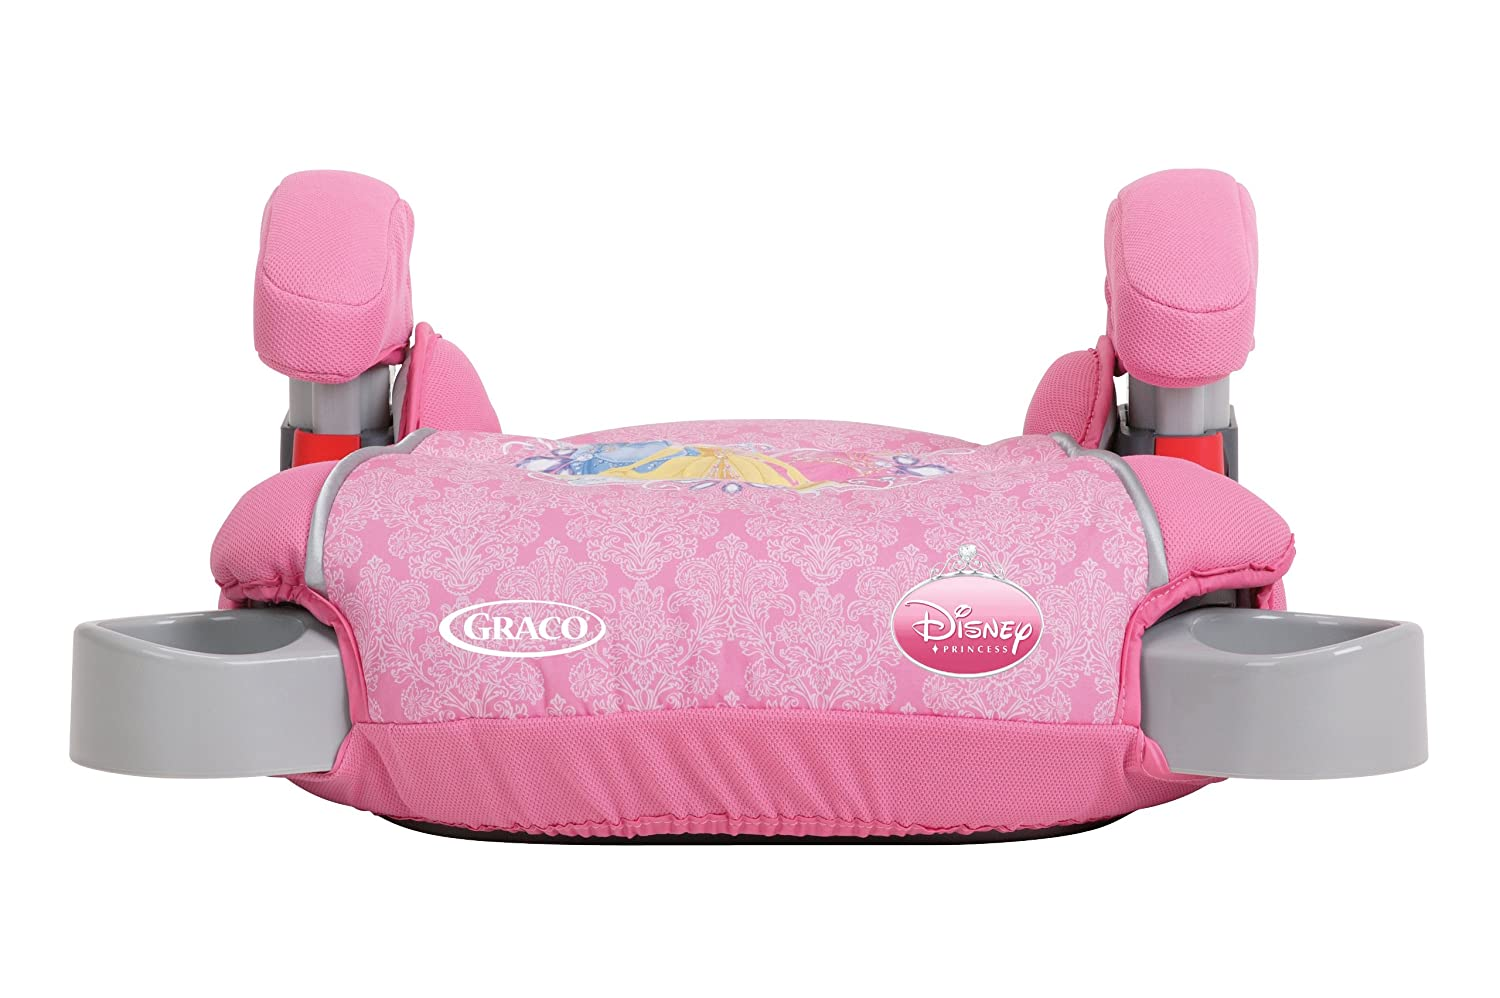 Amazon.com : Graco Backless TurboBooster Booster Seat - Flint ...